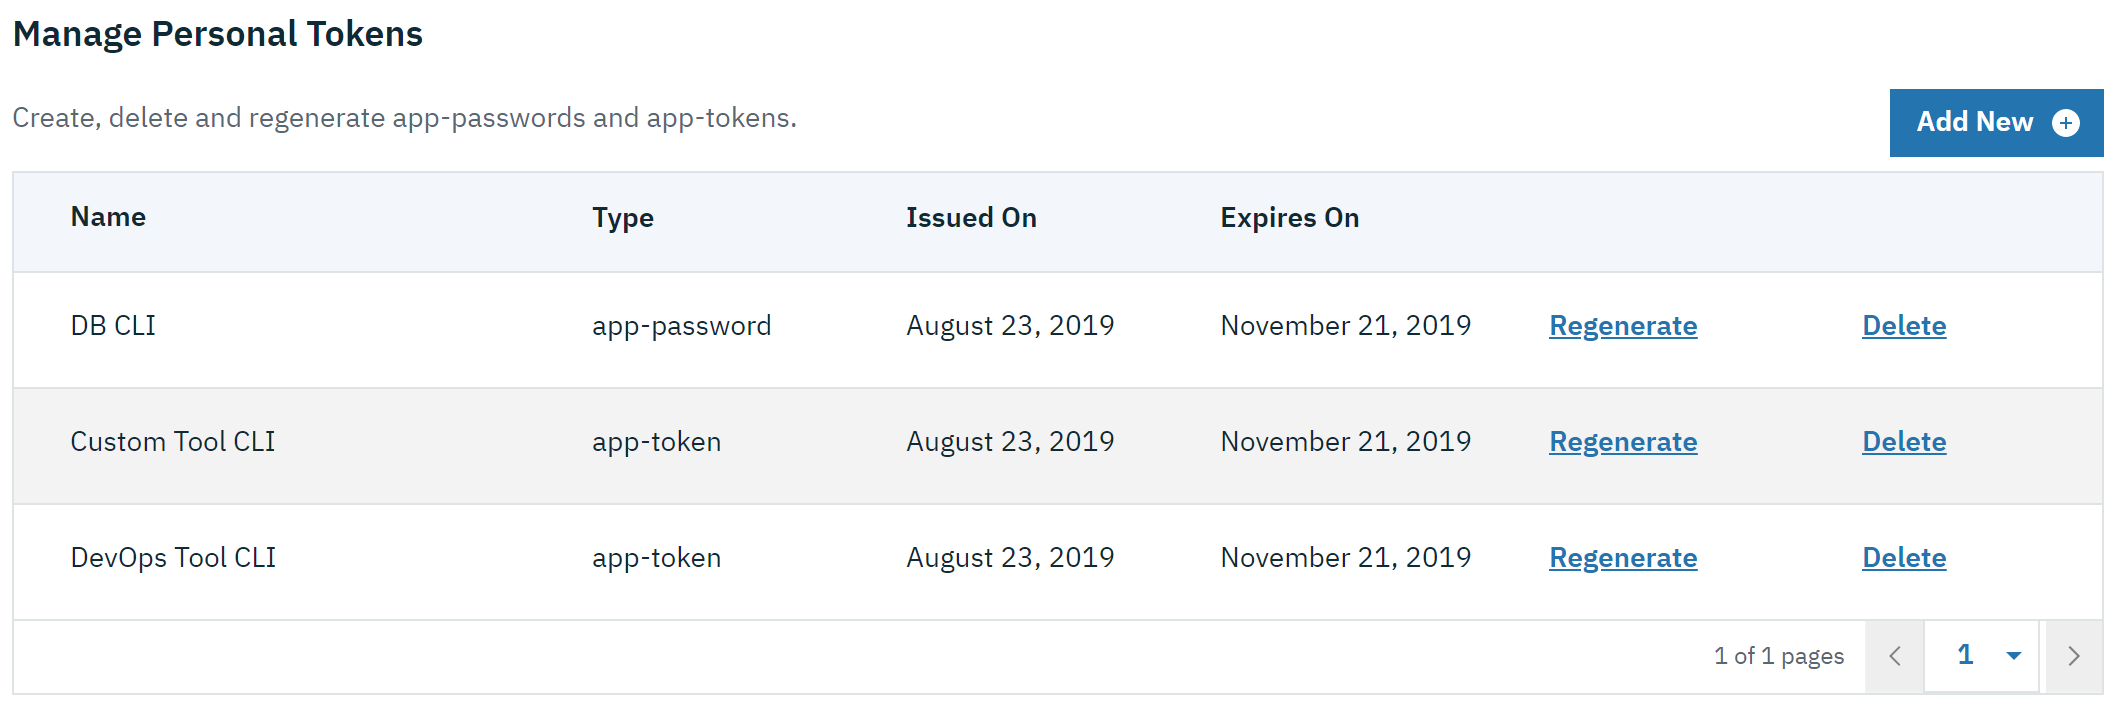 Manage personal tokens in Admin UI